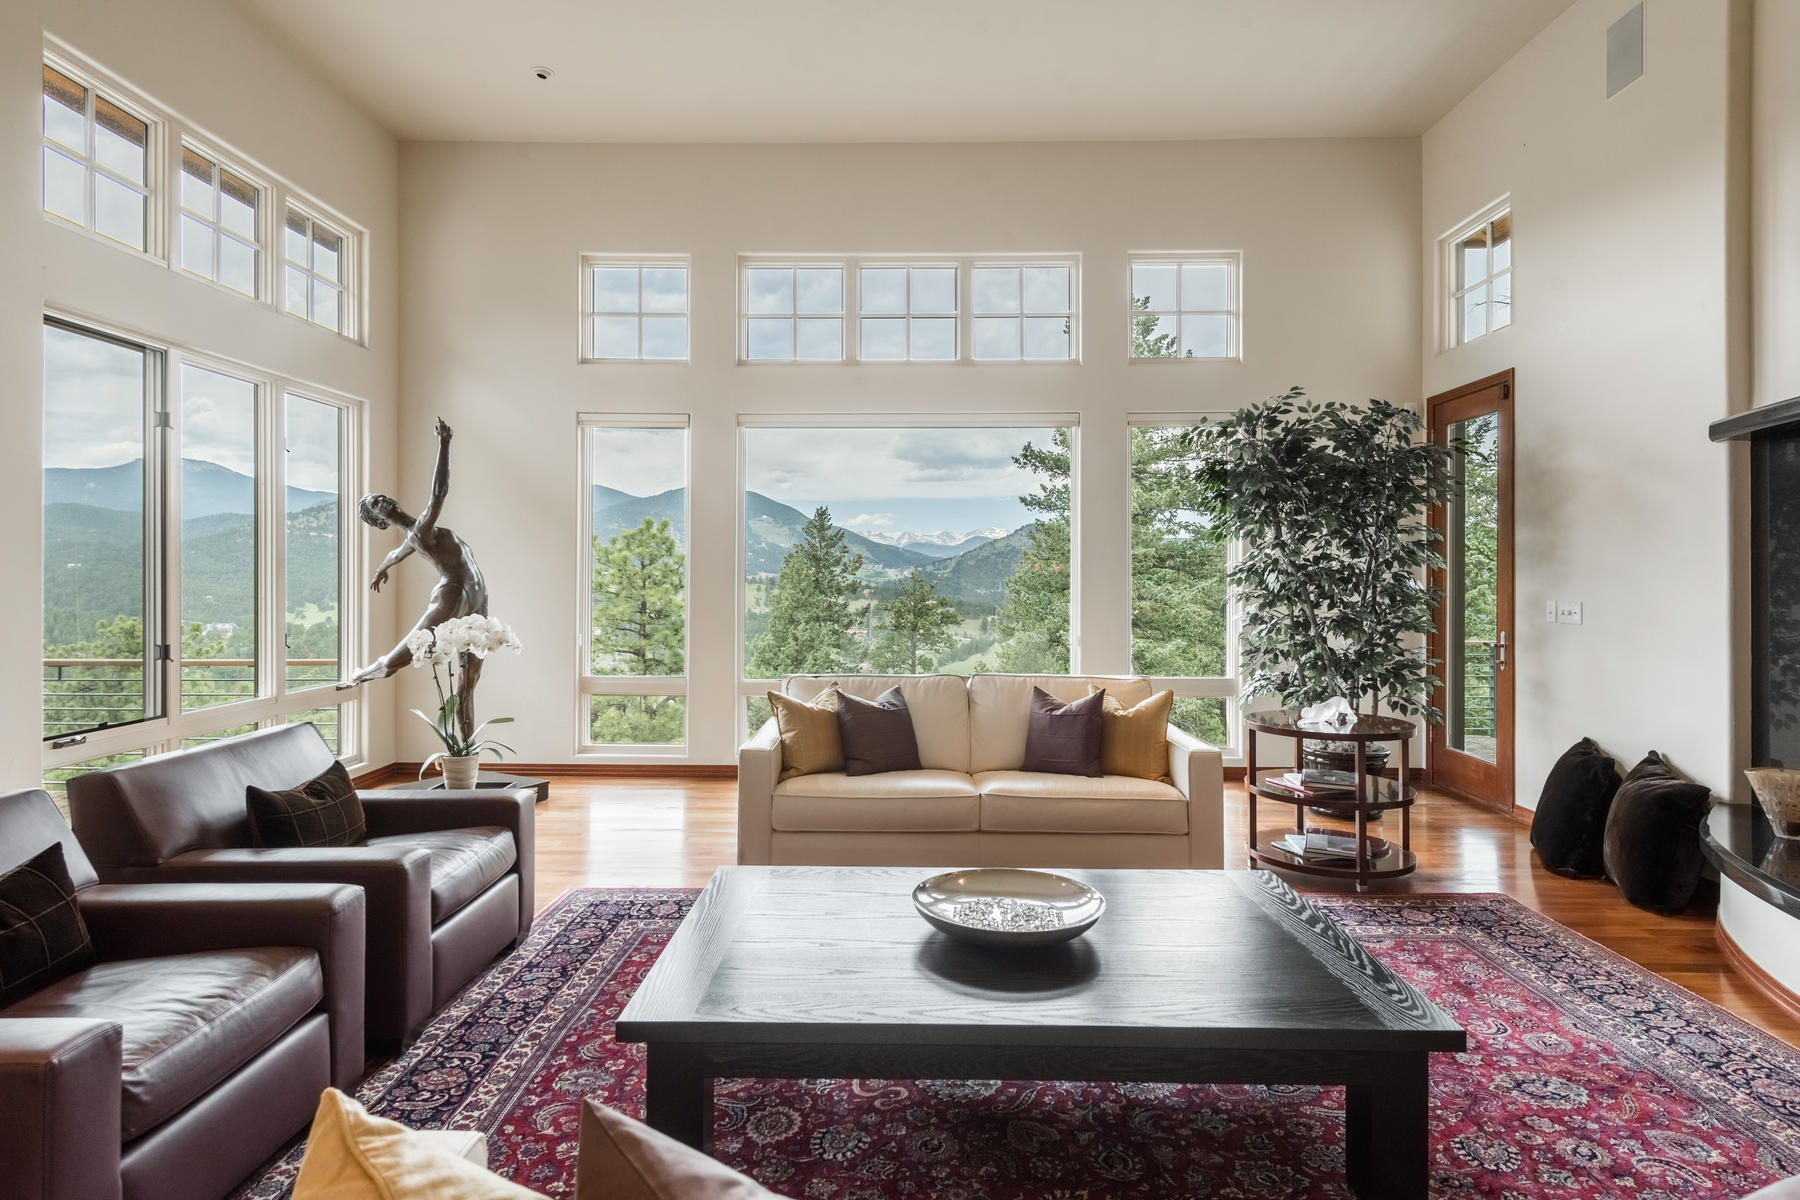 Property for Active at Modern & Bright! 414 Humphrey Drive Evergreen, Colorado 80439 United States